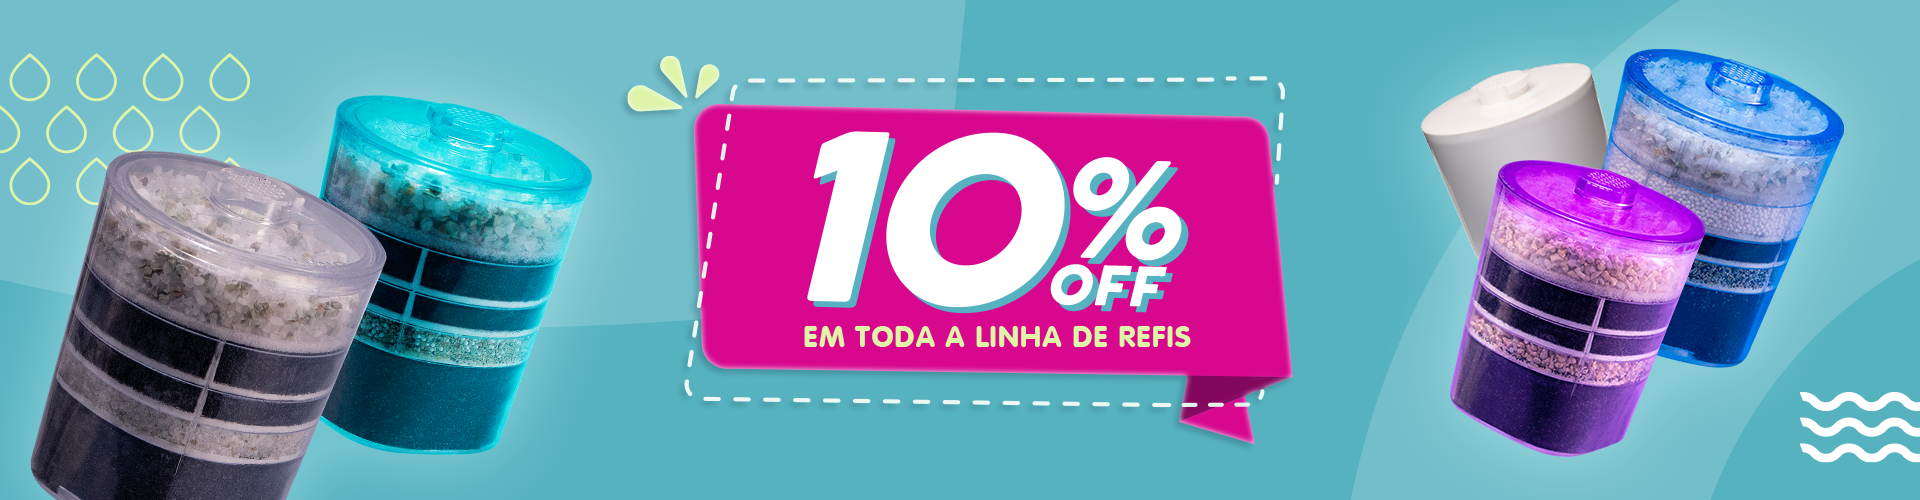 Banner Refis 10% OFF